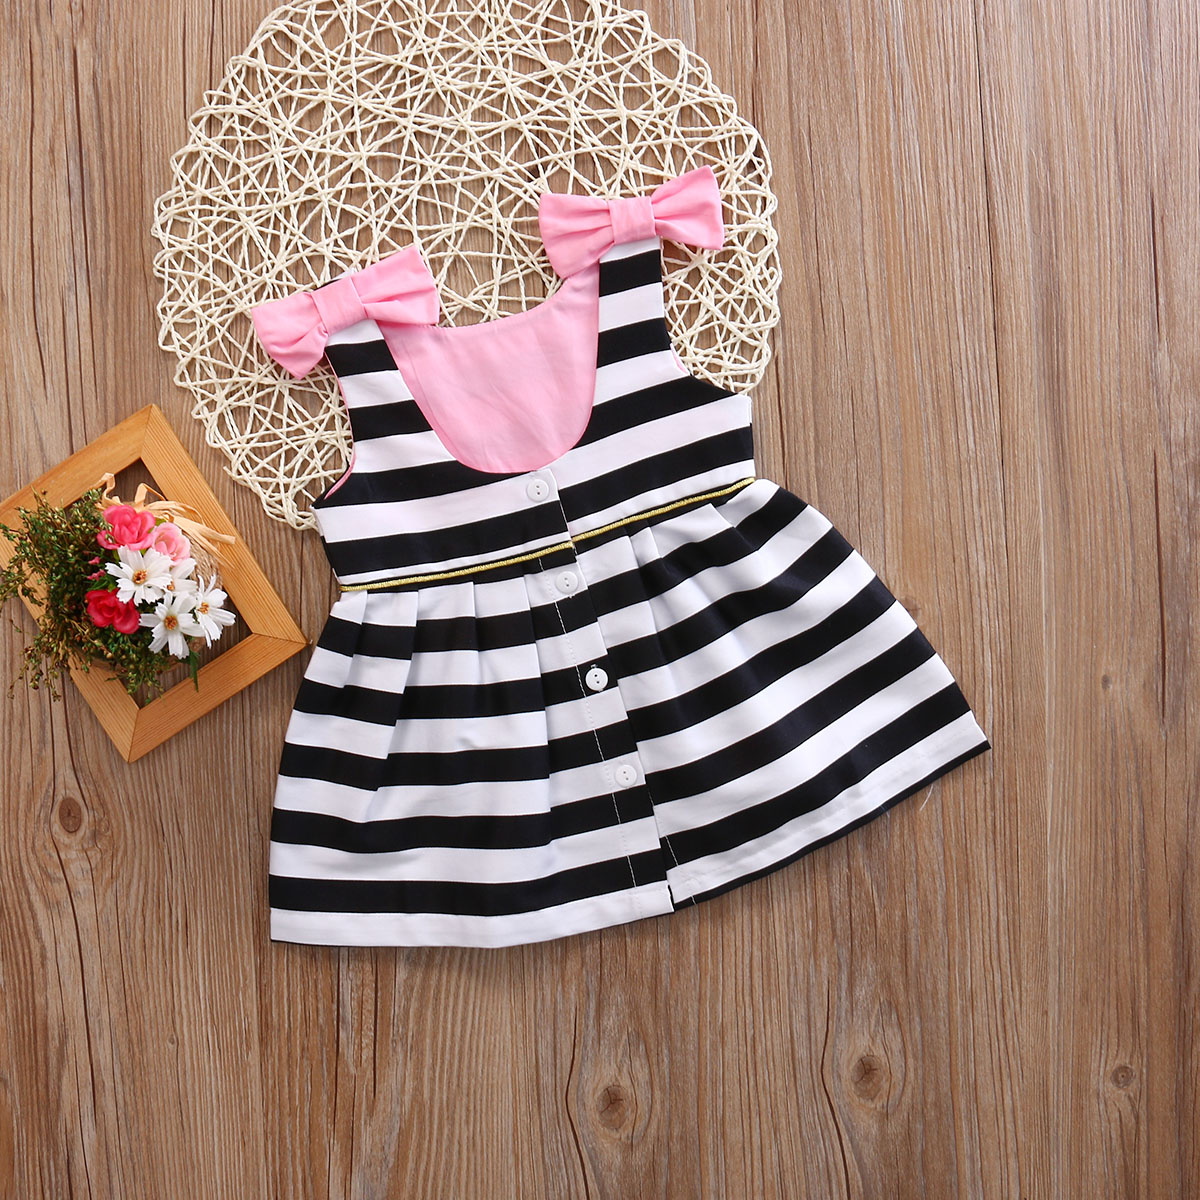 Baby-Girls-Dress-Summer-2017-Stripe-Dress-Baby-Dressing-for-Party-Holiday-Black-and-White-with-Bow-Kids-Clothes-Girls-Cute-Brand-3